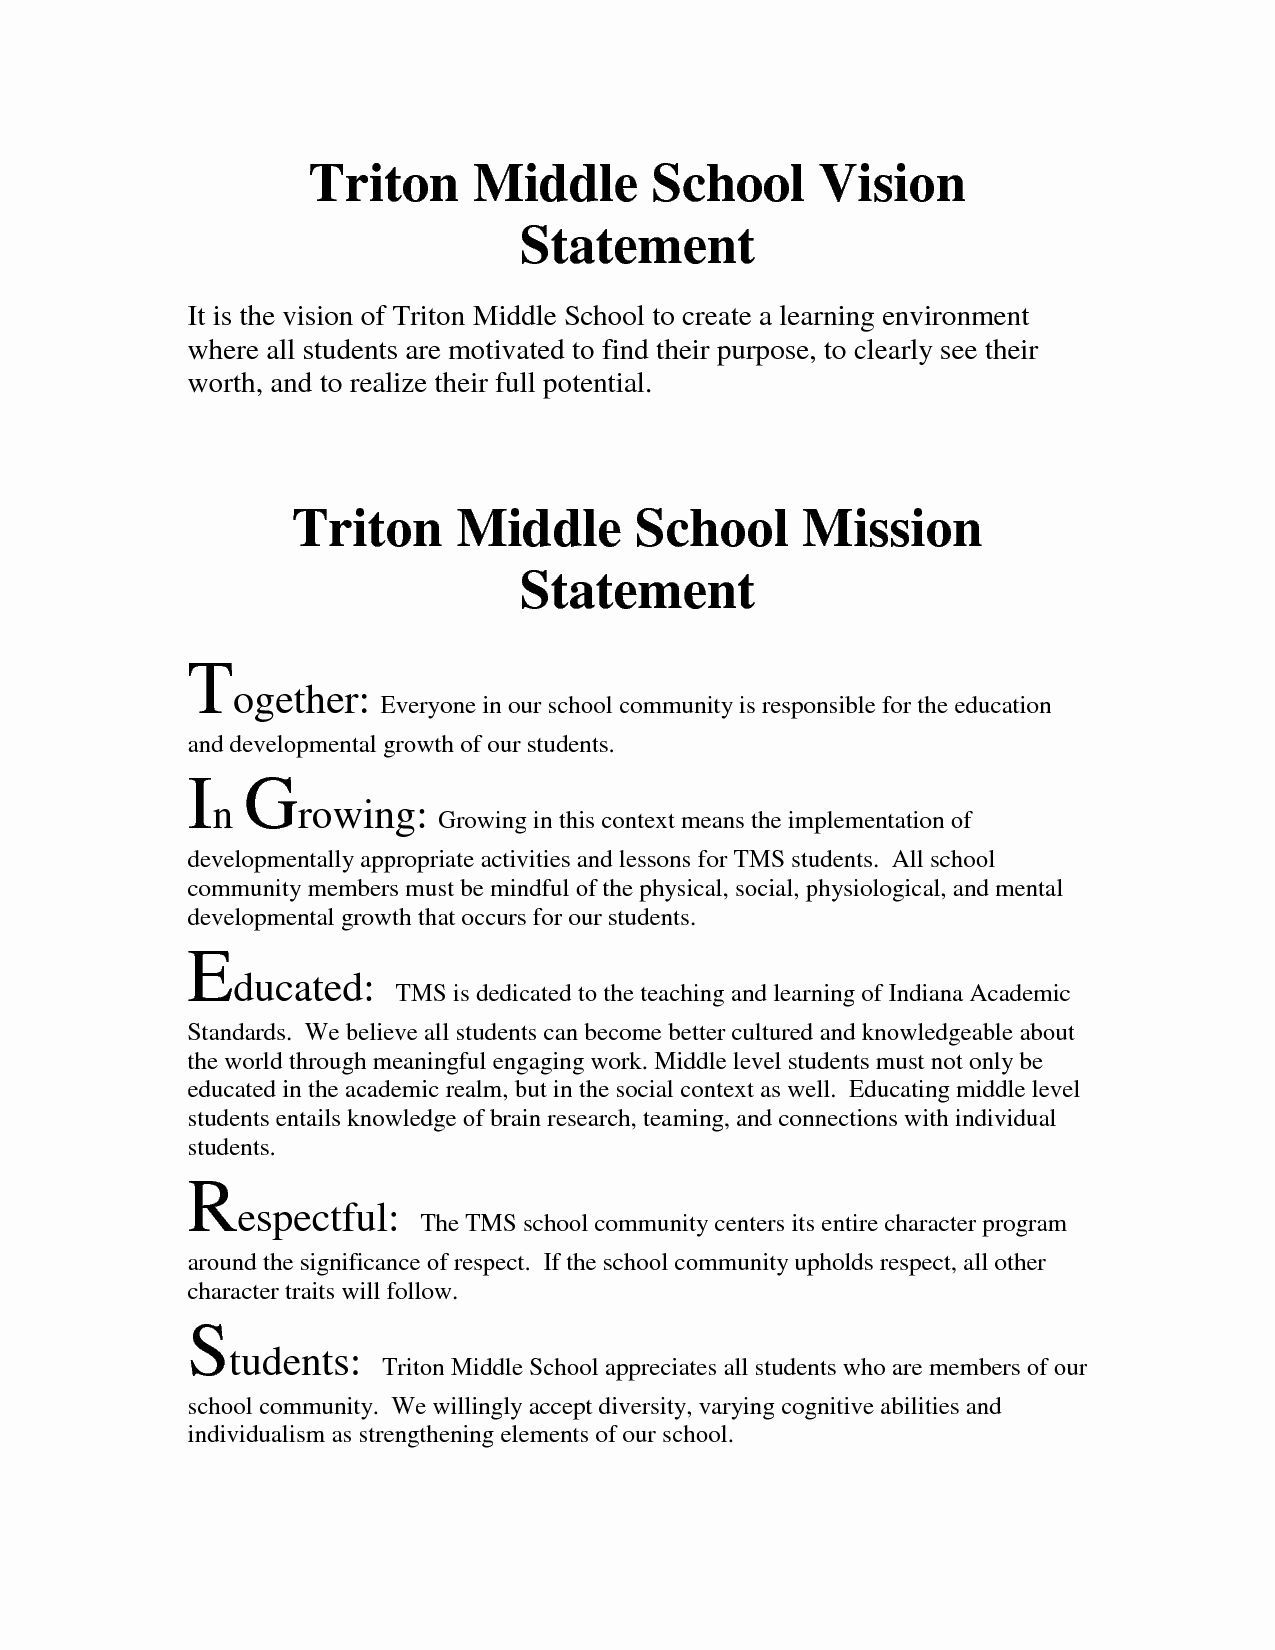 Unique Resume Value Statement Samples Ideas Greatest Residency